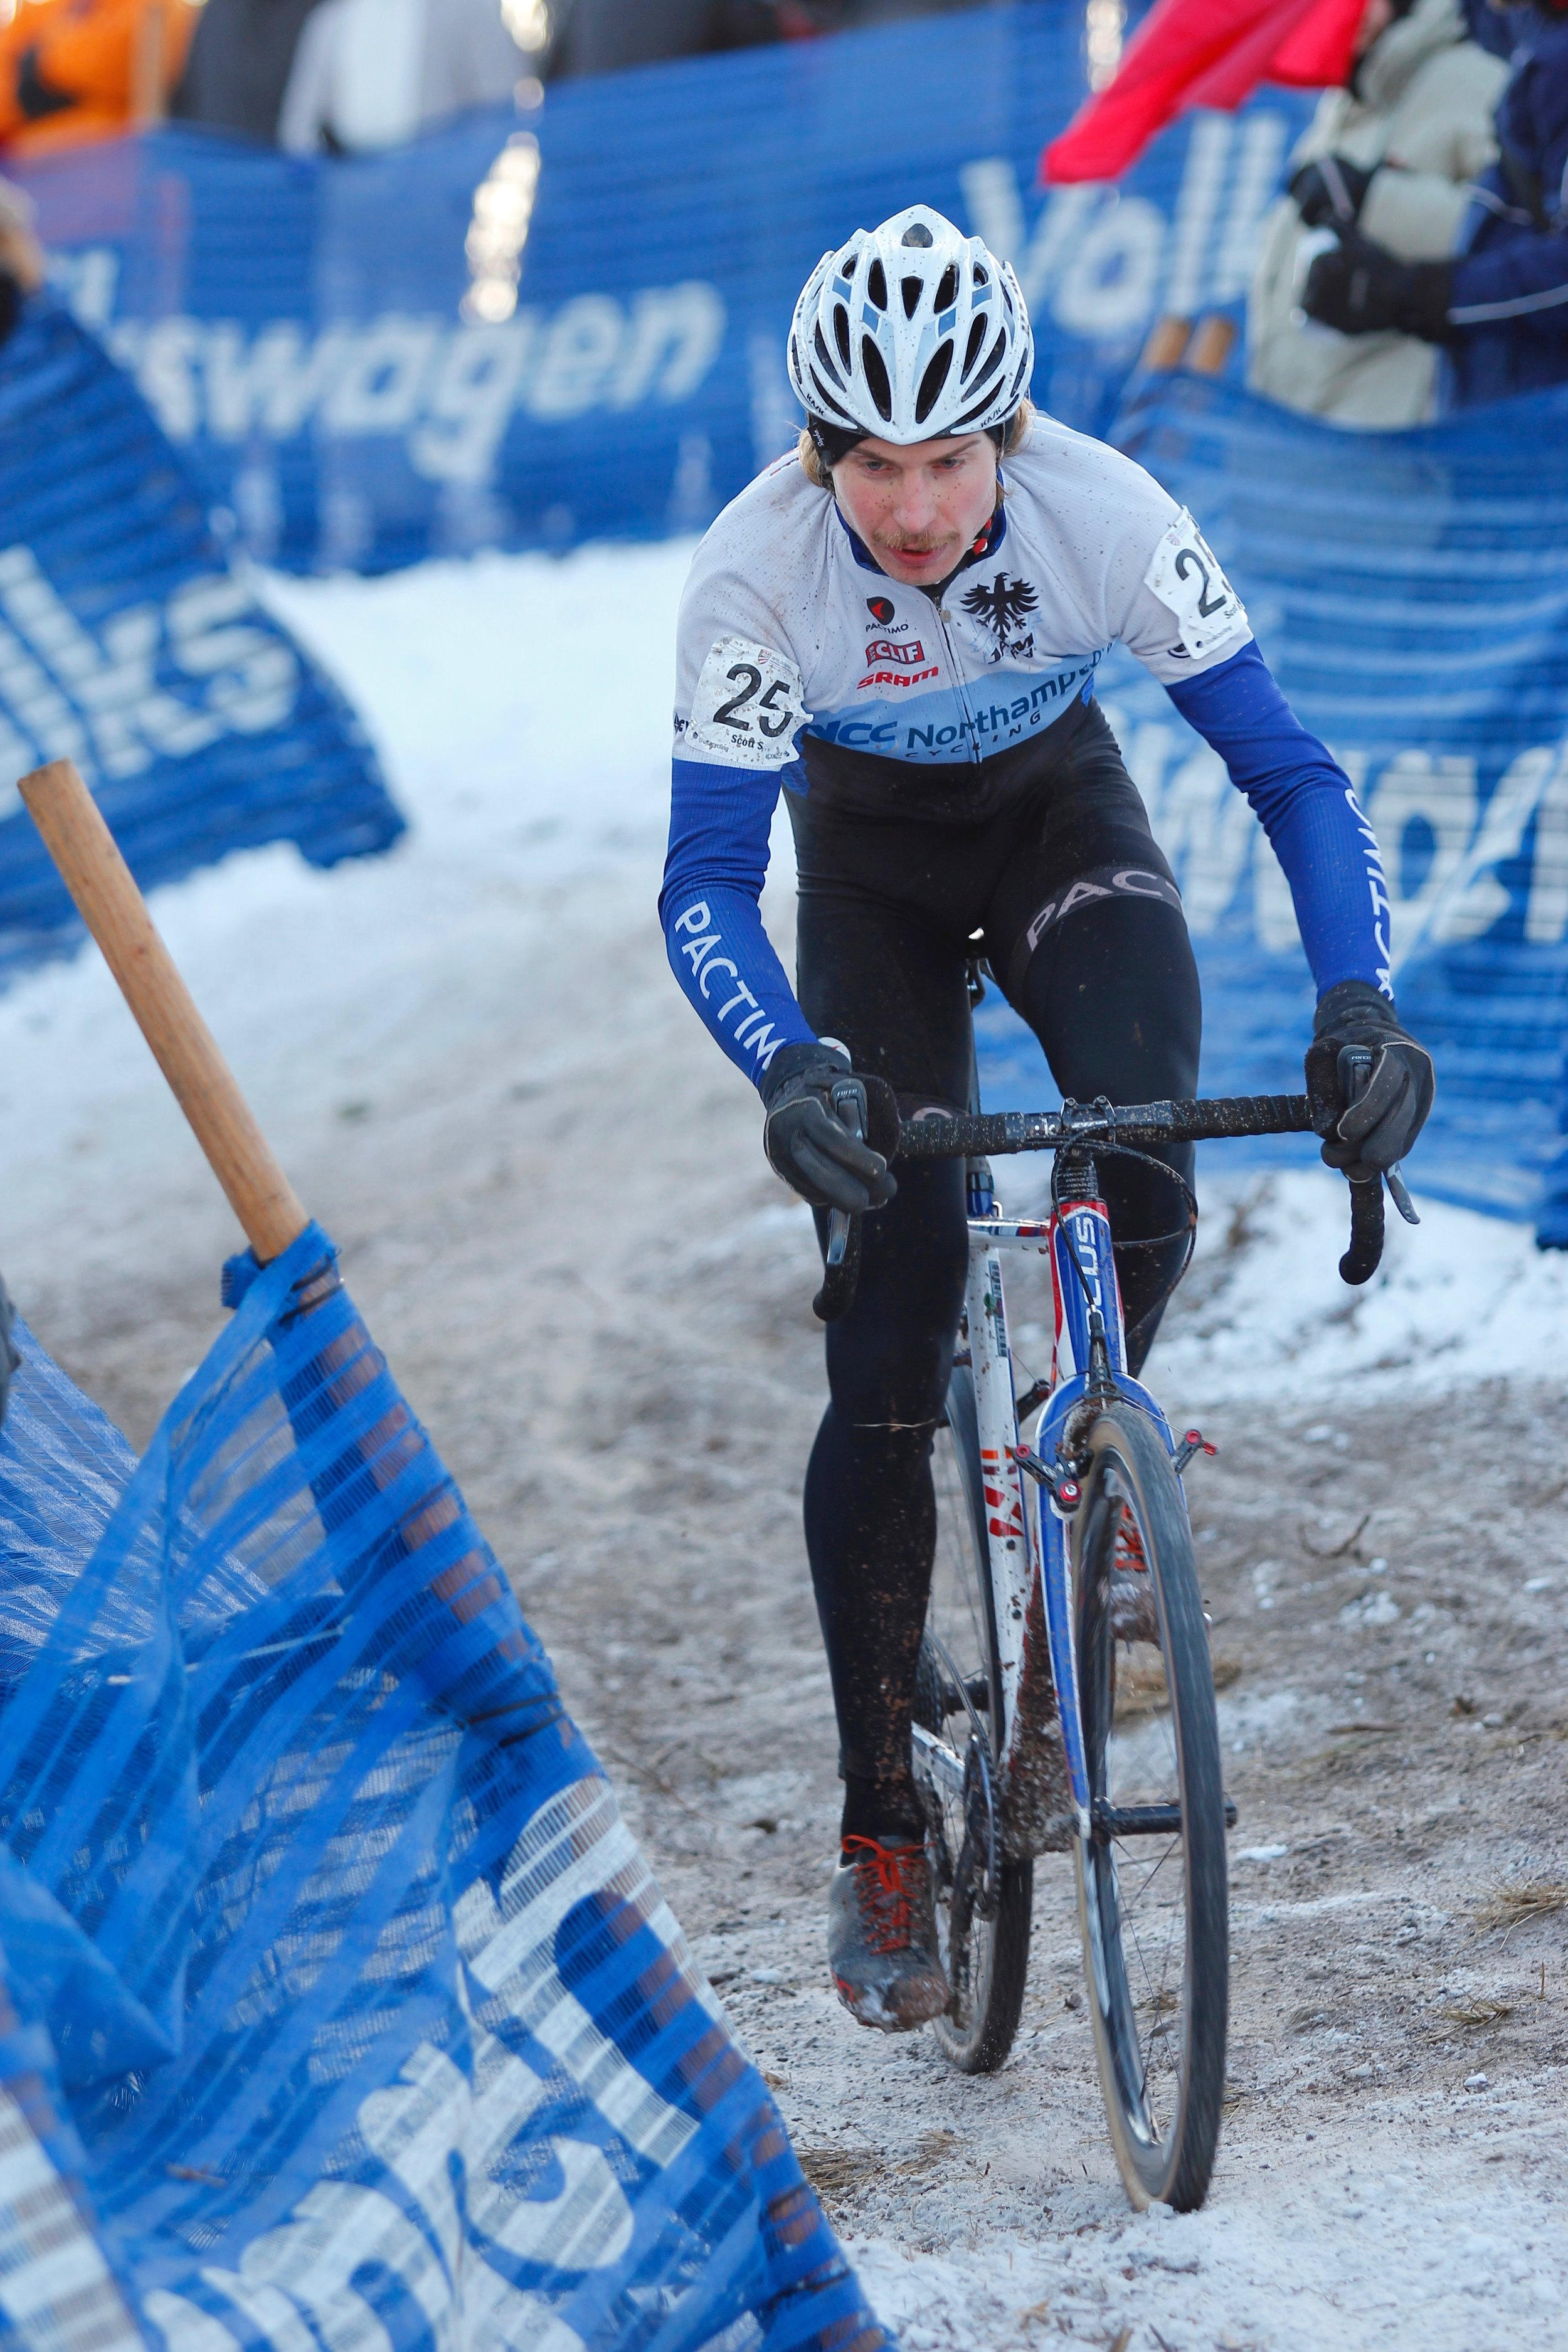 Scott Smith rides the extreme descent leading into the finish line, making it look easy. Photo by Vicky Sama.